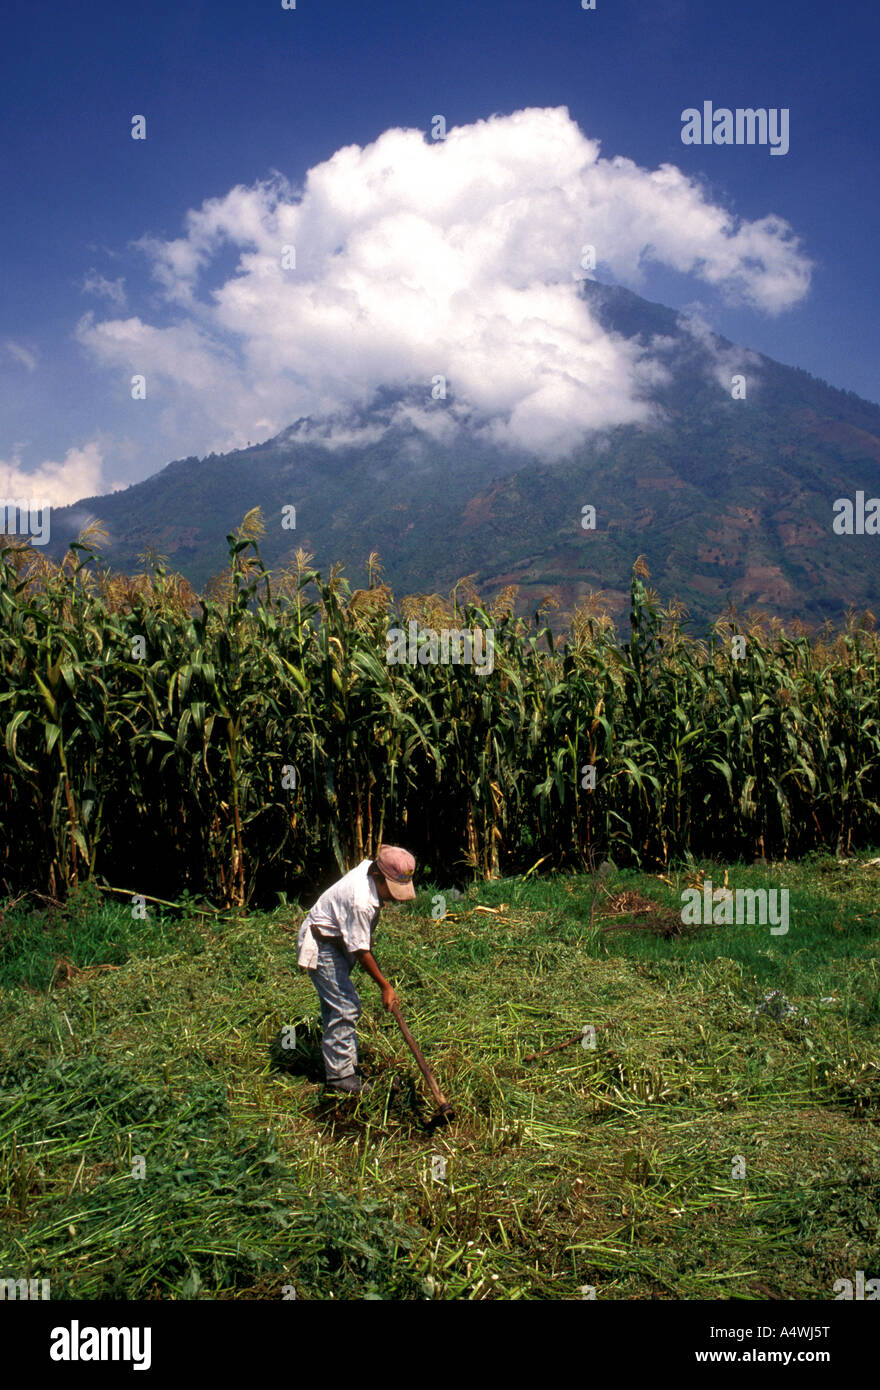 Guatemalan boy,Guatemalan, boy, child, clearing field, corn crop, Santiago Atitlan, Tzutujil Maya, Solola Department, - Stock Image